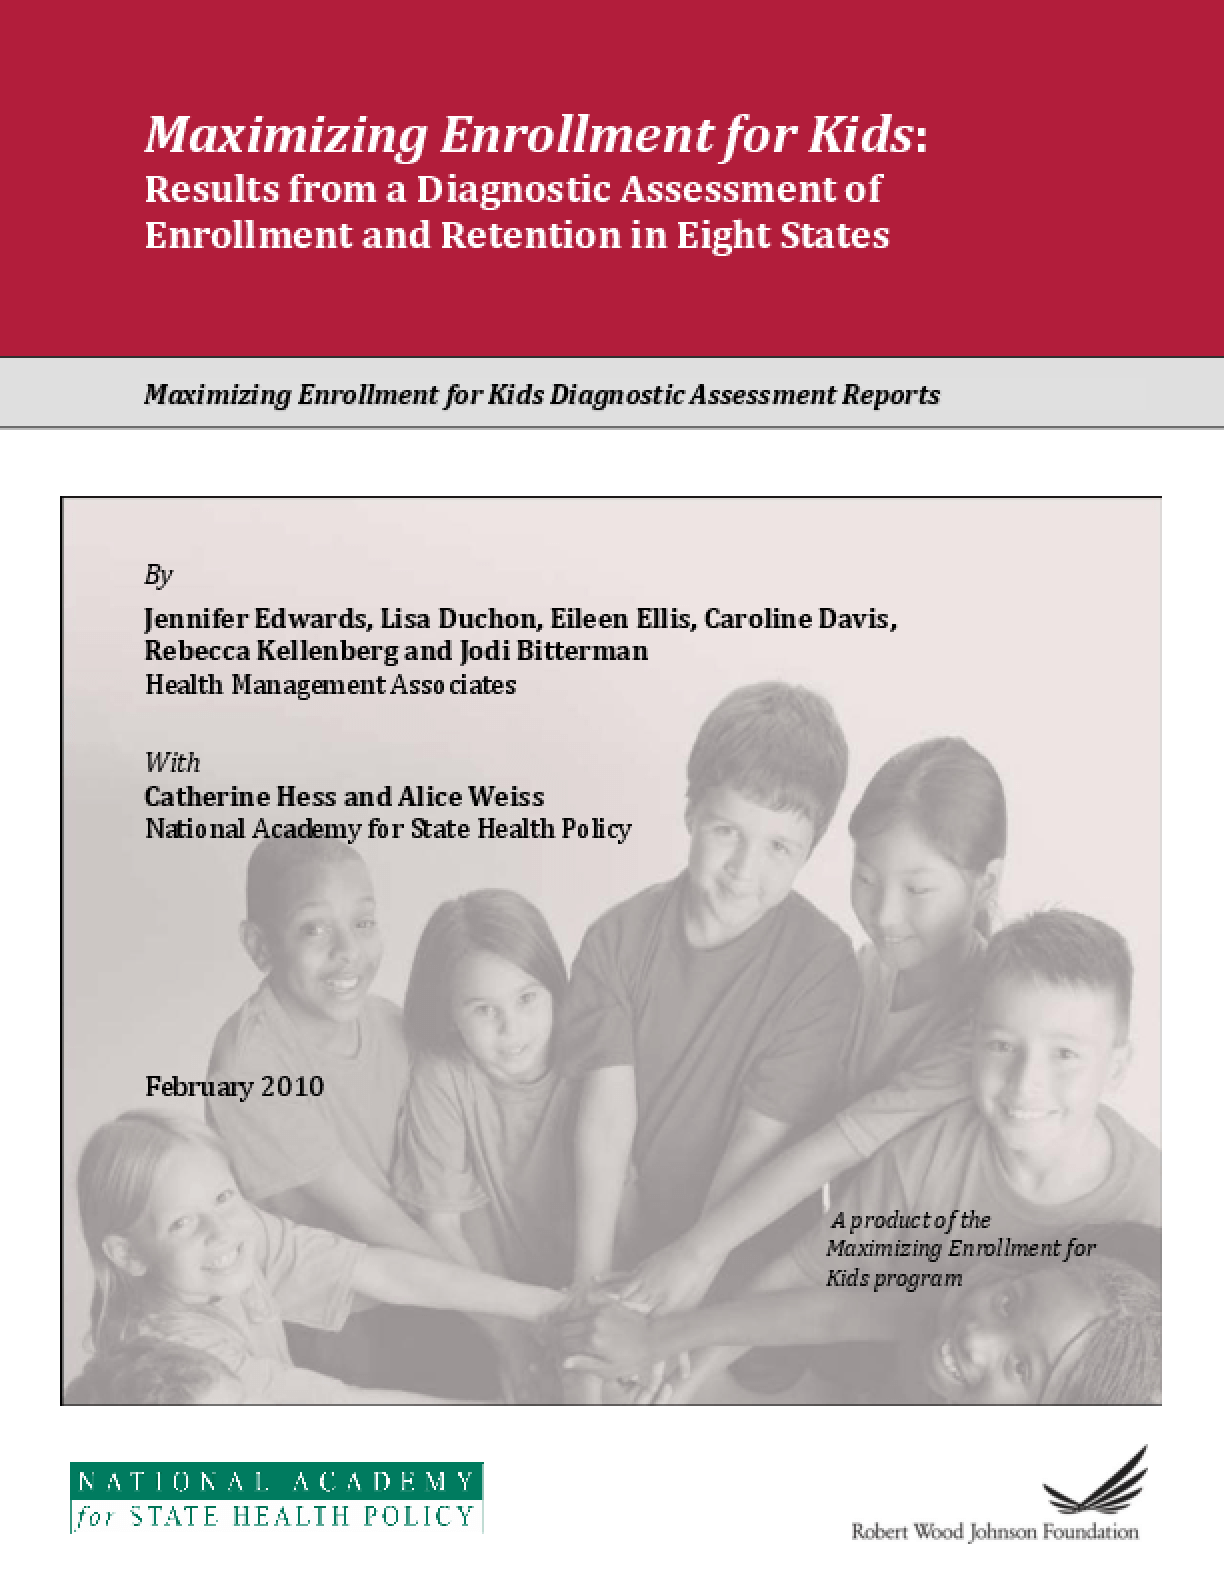 Maximizing Enrollment for Kids: Results From a Diagnostic Assessment of Enrollment and Retention in Eight States